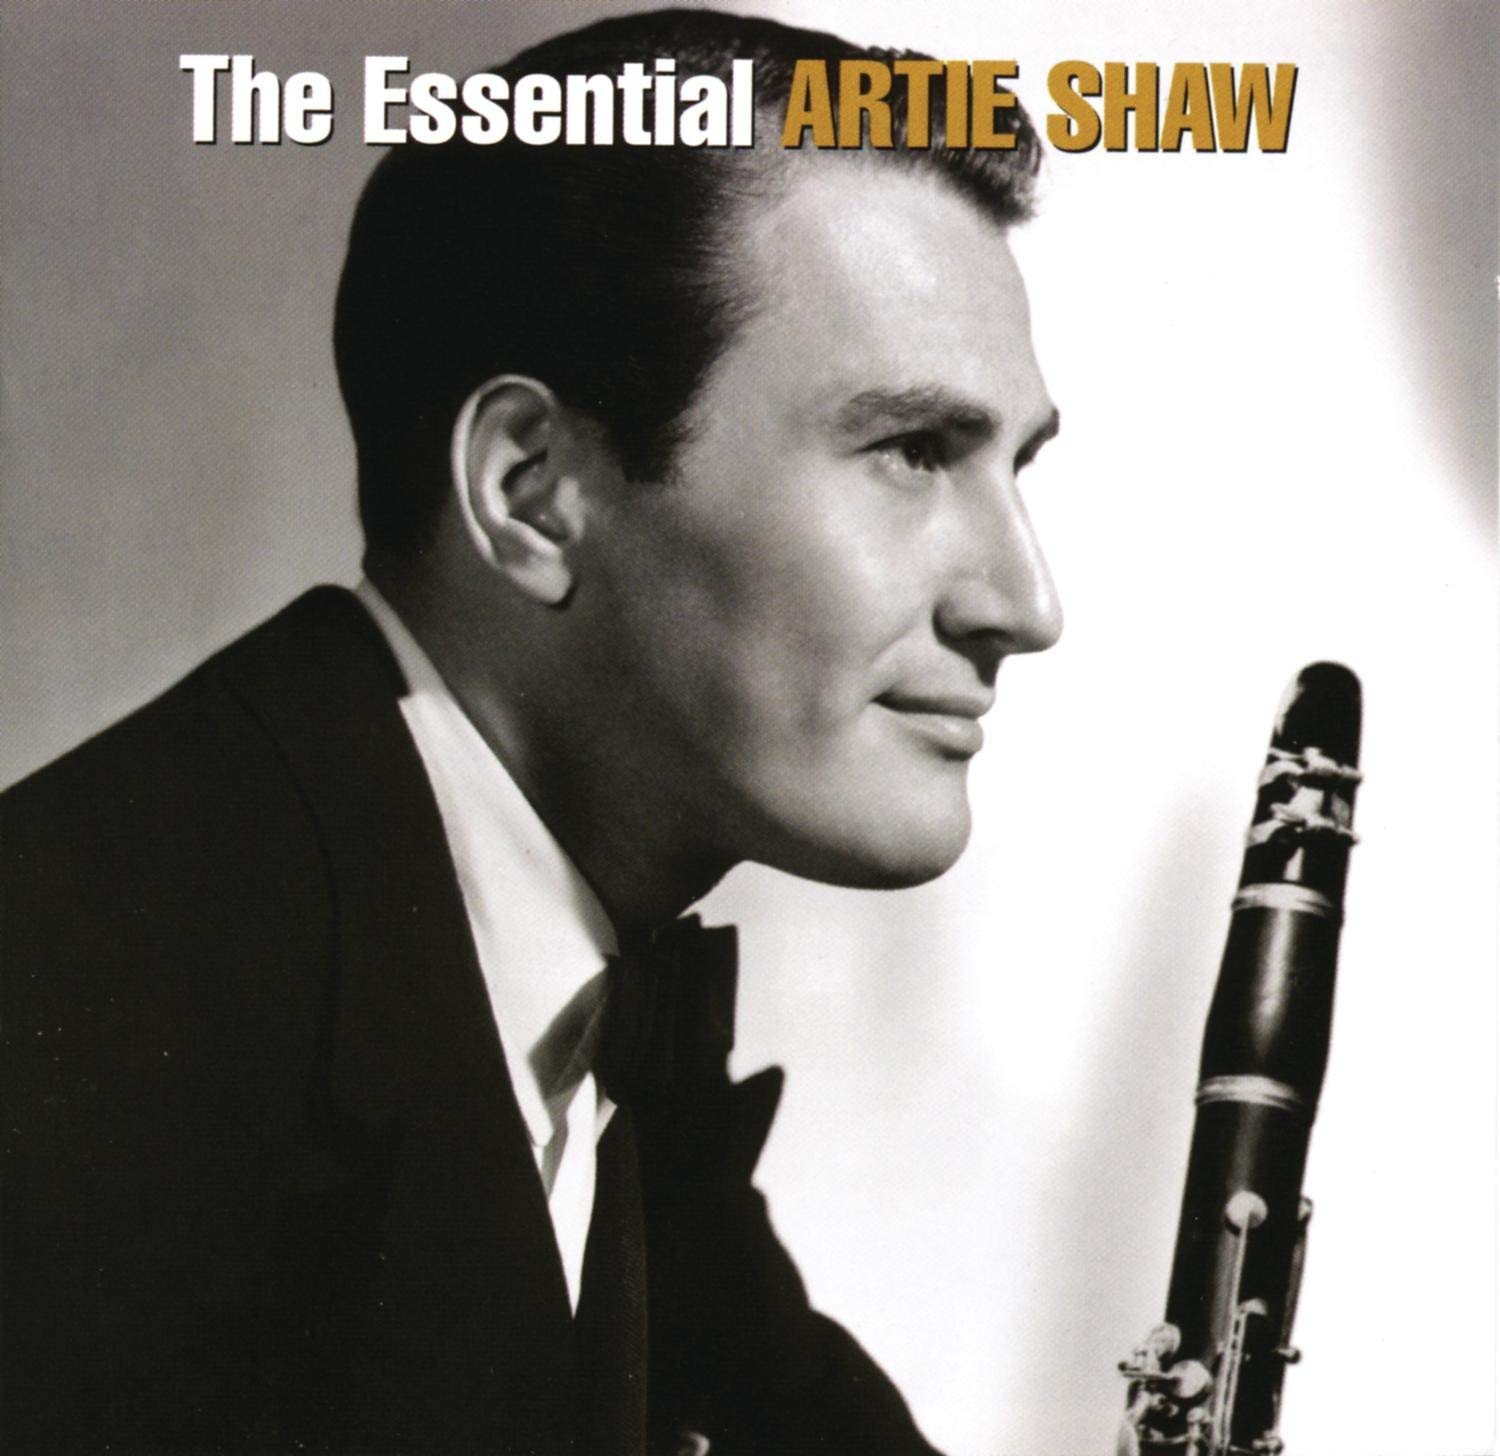 Artie Shaw Yesterdays With The Song Of Life Artie Shaw The Essential 2005